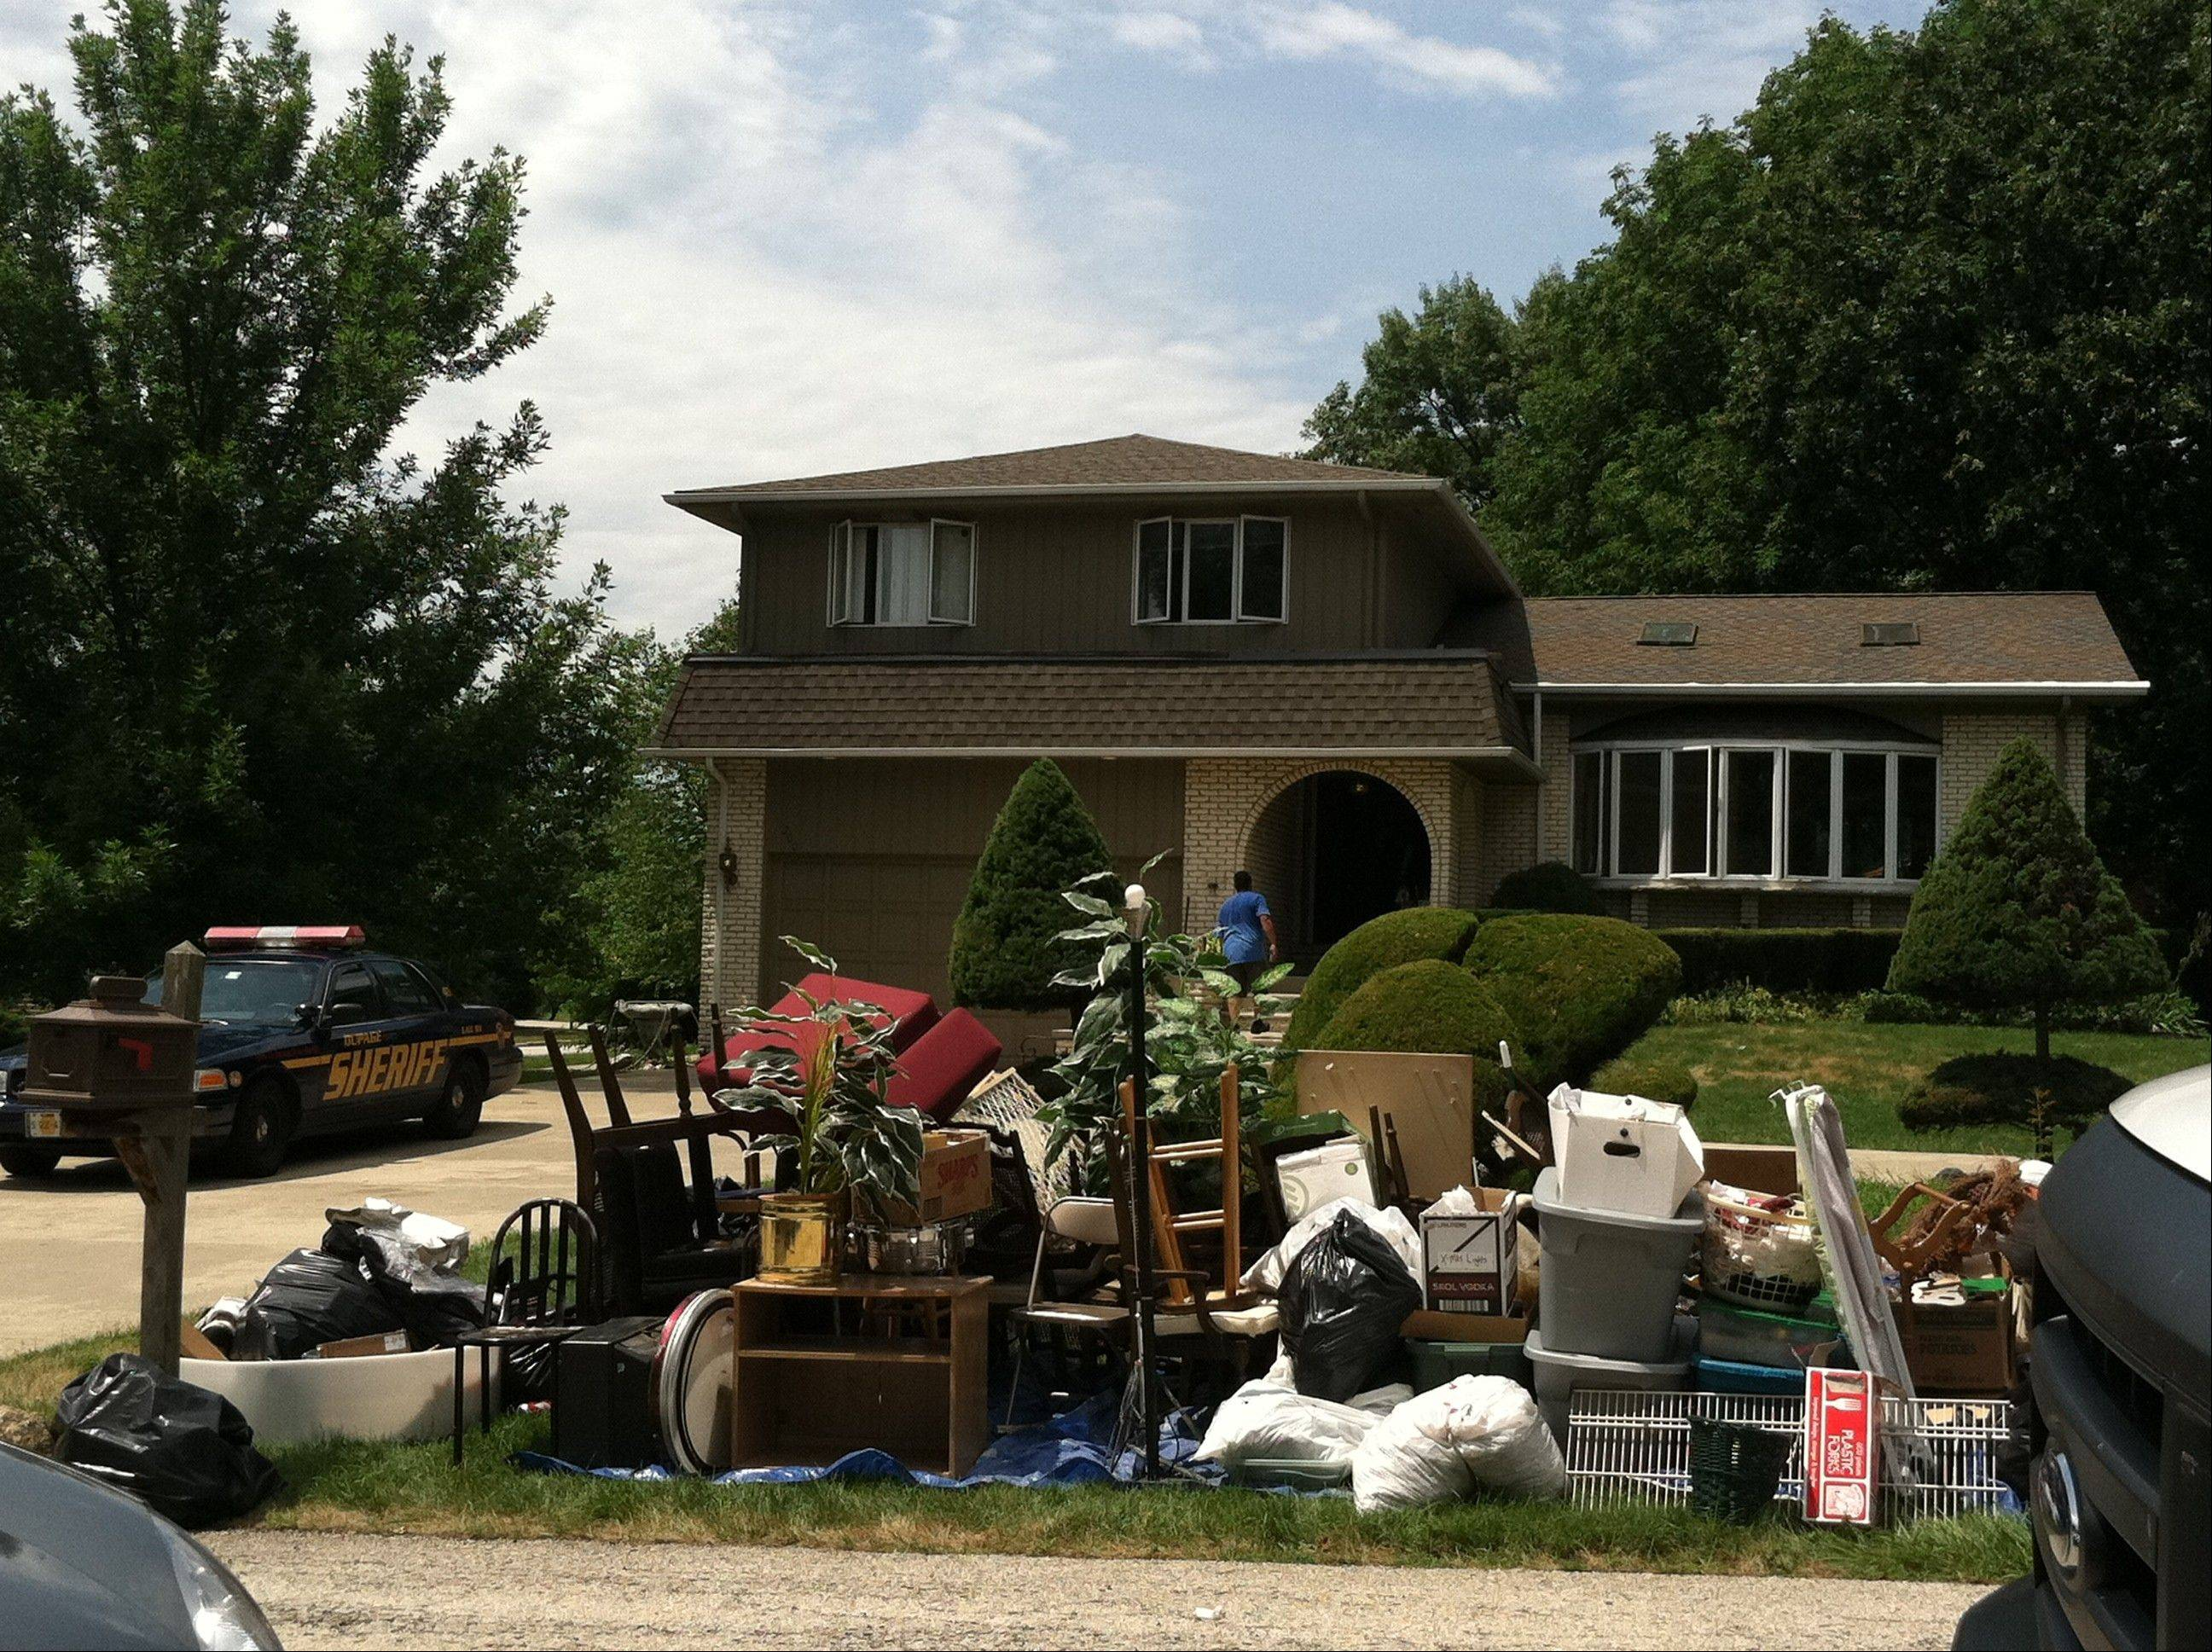 DuPage County Sheriff's deputies arrested five people who were protesting the eviction of the owners of this house in Addison.